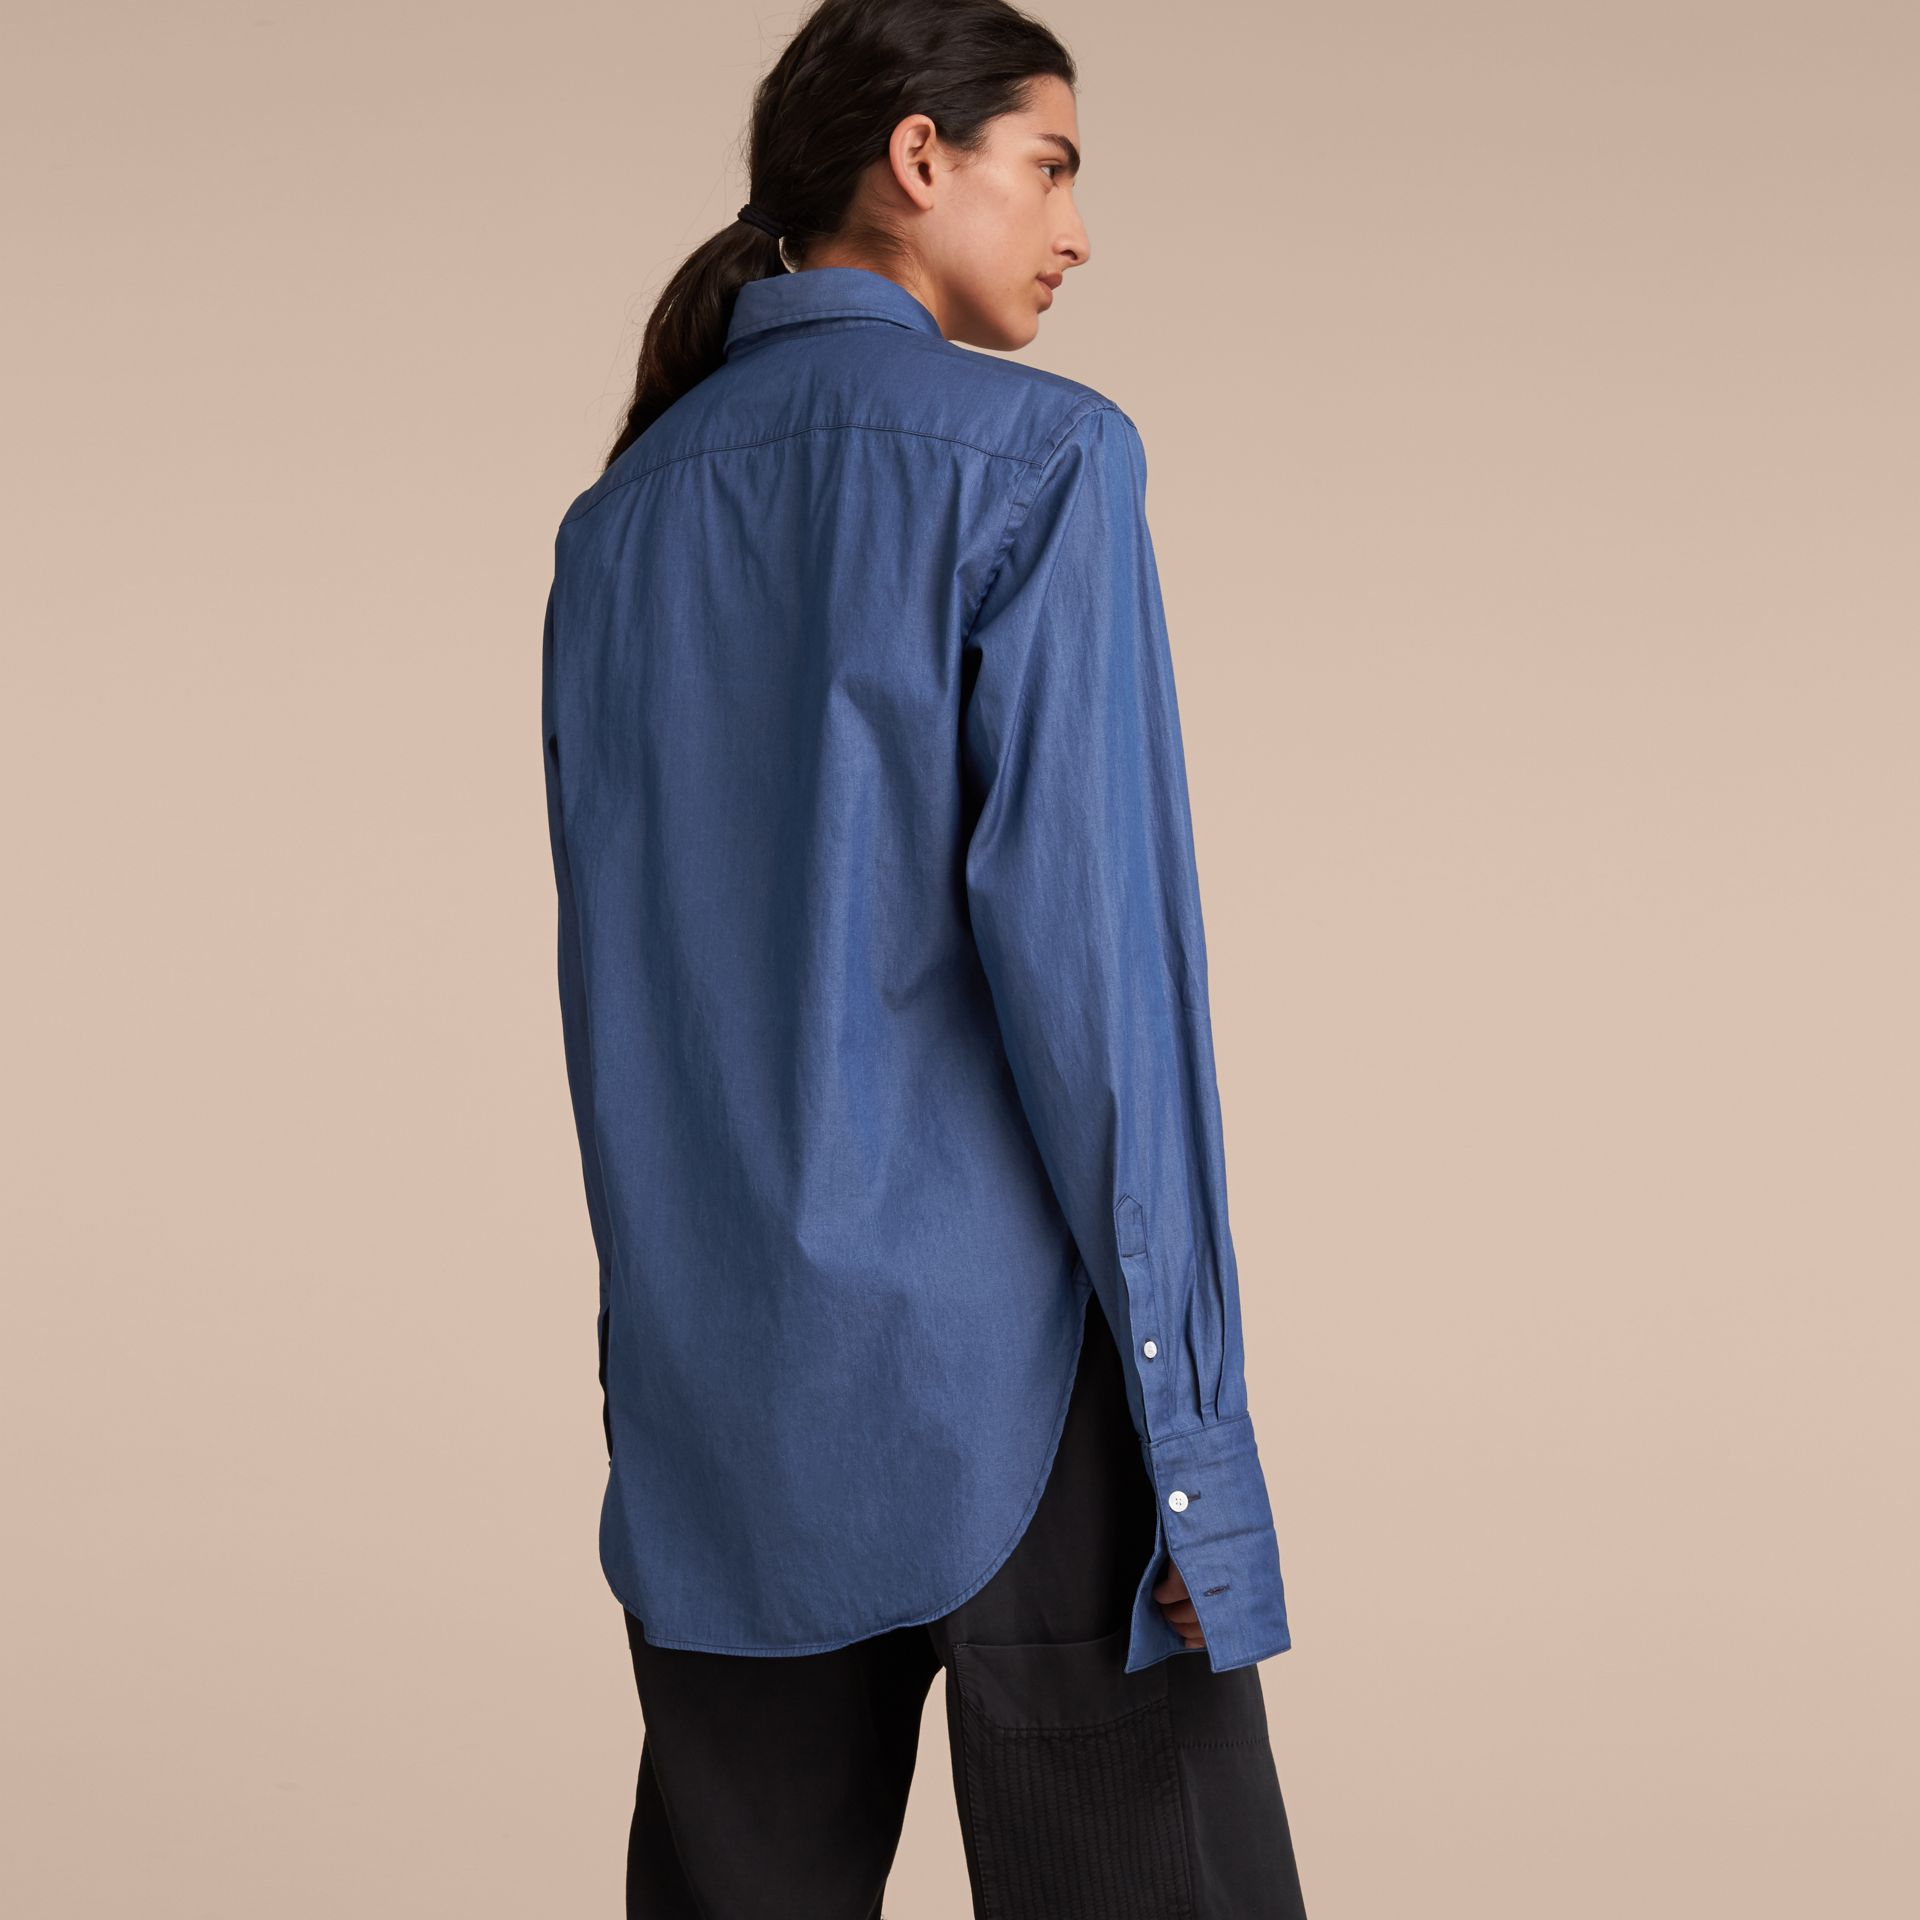 Unisex Double-cuff Pintuck Bib Cotton Shirt in Denim Blue - Women | Burberry Singapore - gallery image 7